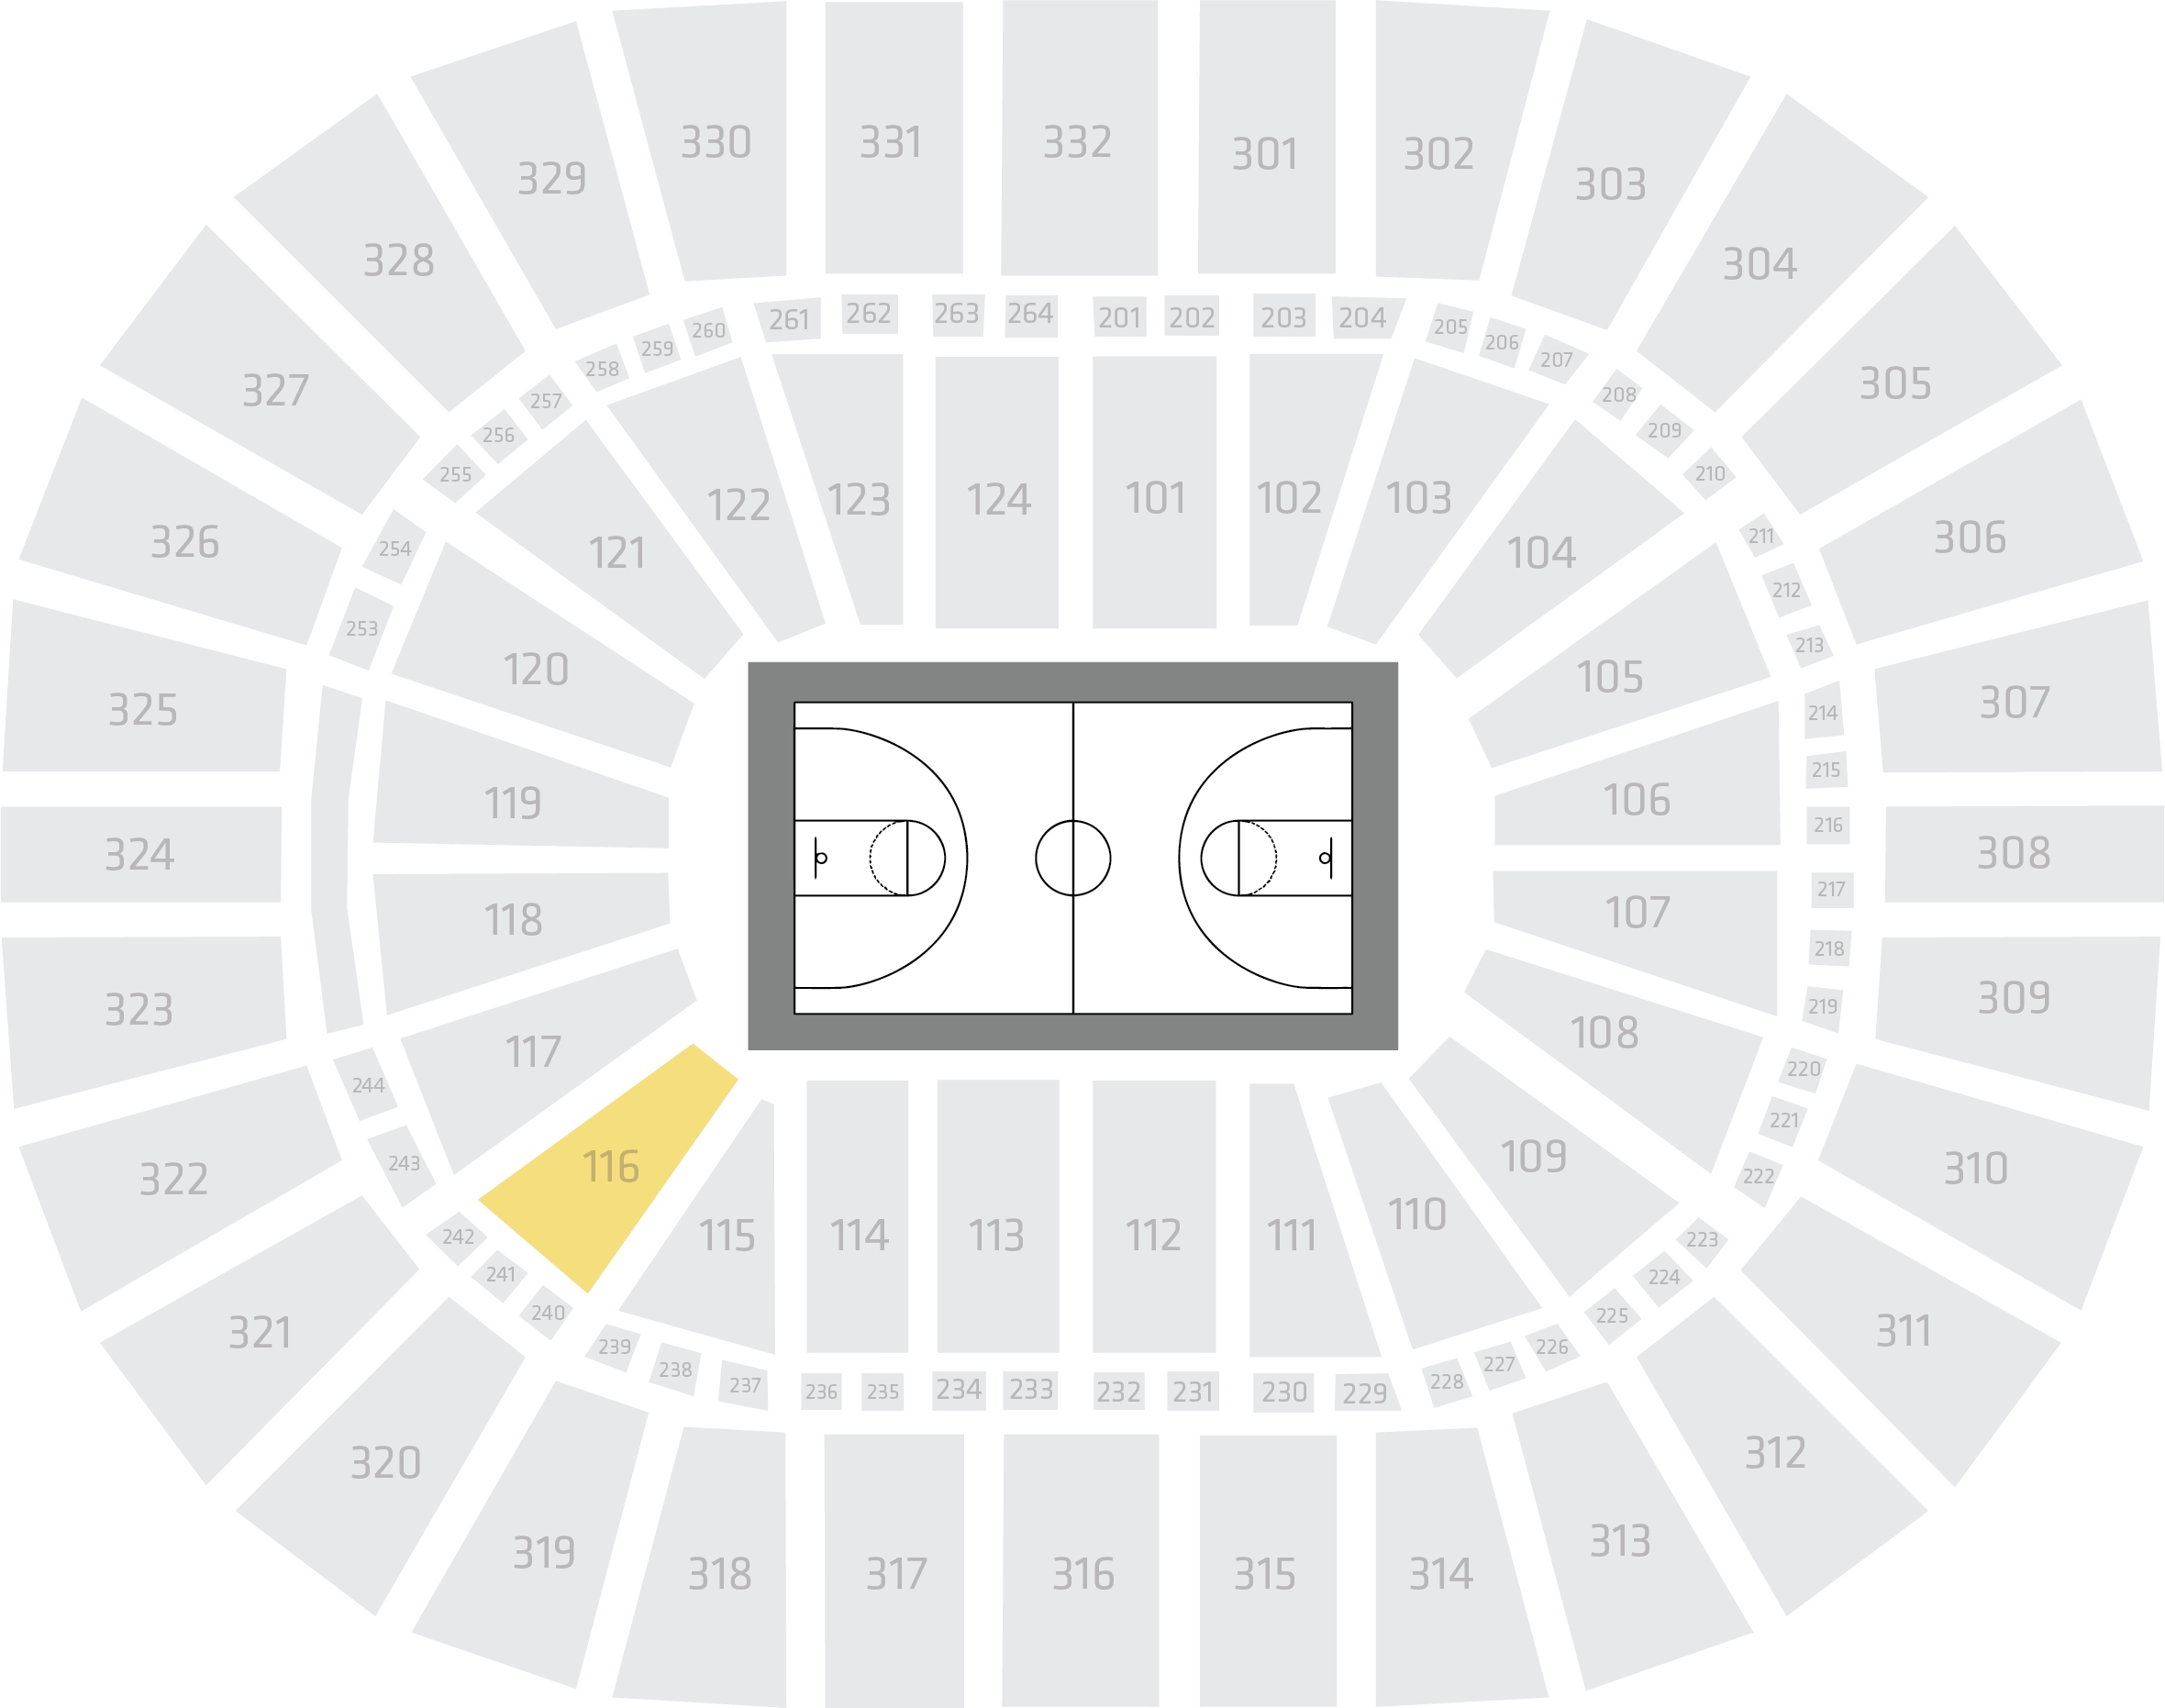 Smoothie-King-Center-Seating-Chart-GOLD-B-2.png